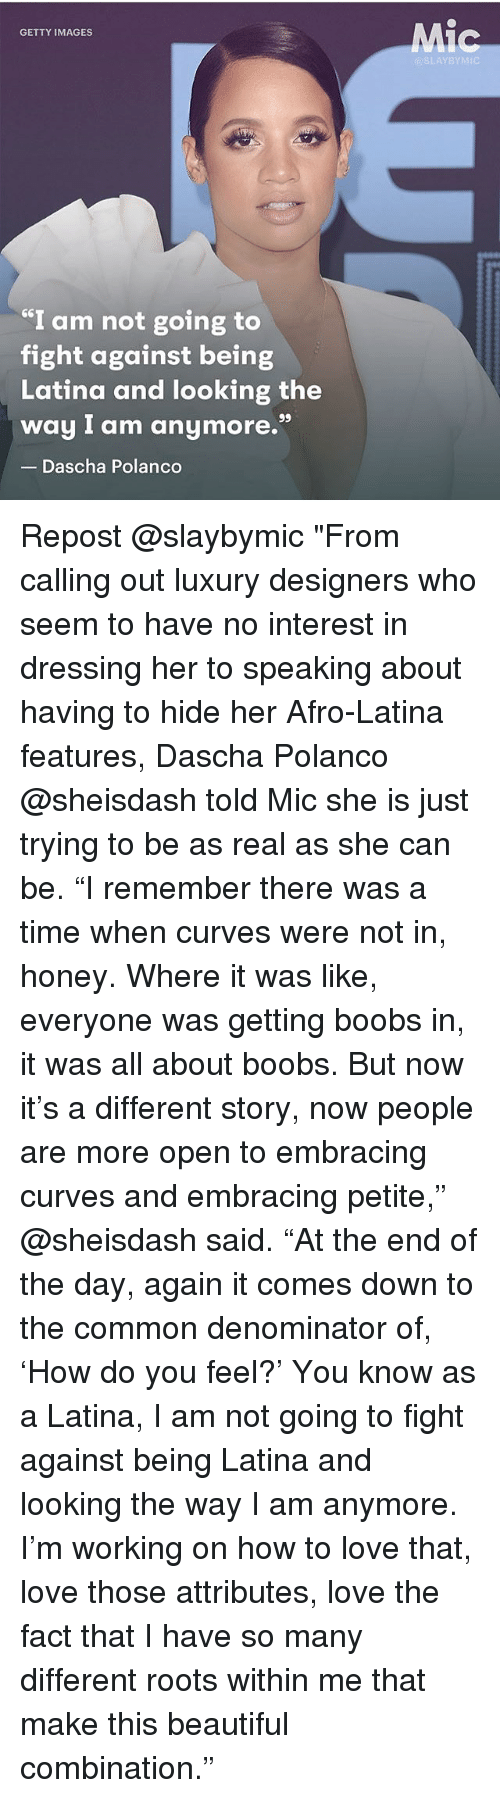 """Boobses: Mic  GETTY IMAGES  @SLAYBYMIC  I am not going to  fight against being  Latina and looking the  way I am anymore.""""  Dascha Polanco Repost @slaybymic """"From calling out luxury designers who seem to have no interest in dressing her to speaking about having to hide her Afro-Latina features, Dascha Polanco @sheisdash told Mic she is just trying to be as real as she can be. """"I remember there was a time when curves were not in, honey. Where it was like, everyone was getting boobs in, it was all about boobs. But now it's a different story, now people are more open to embracing curves and embracing petite,"""" @sheisdash said. """"At the end of the day, again it comes down to the common denominator of, 'How do you feel?' You know as a Latina, I am not going to fight against being Latina and looking the way I am anymore. I'm working on how to love that, love those attributes, love the fact that I have so many different roots within me that make this beautiful combination."""""""